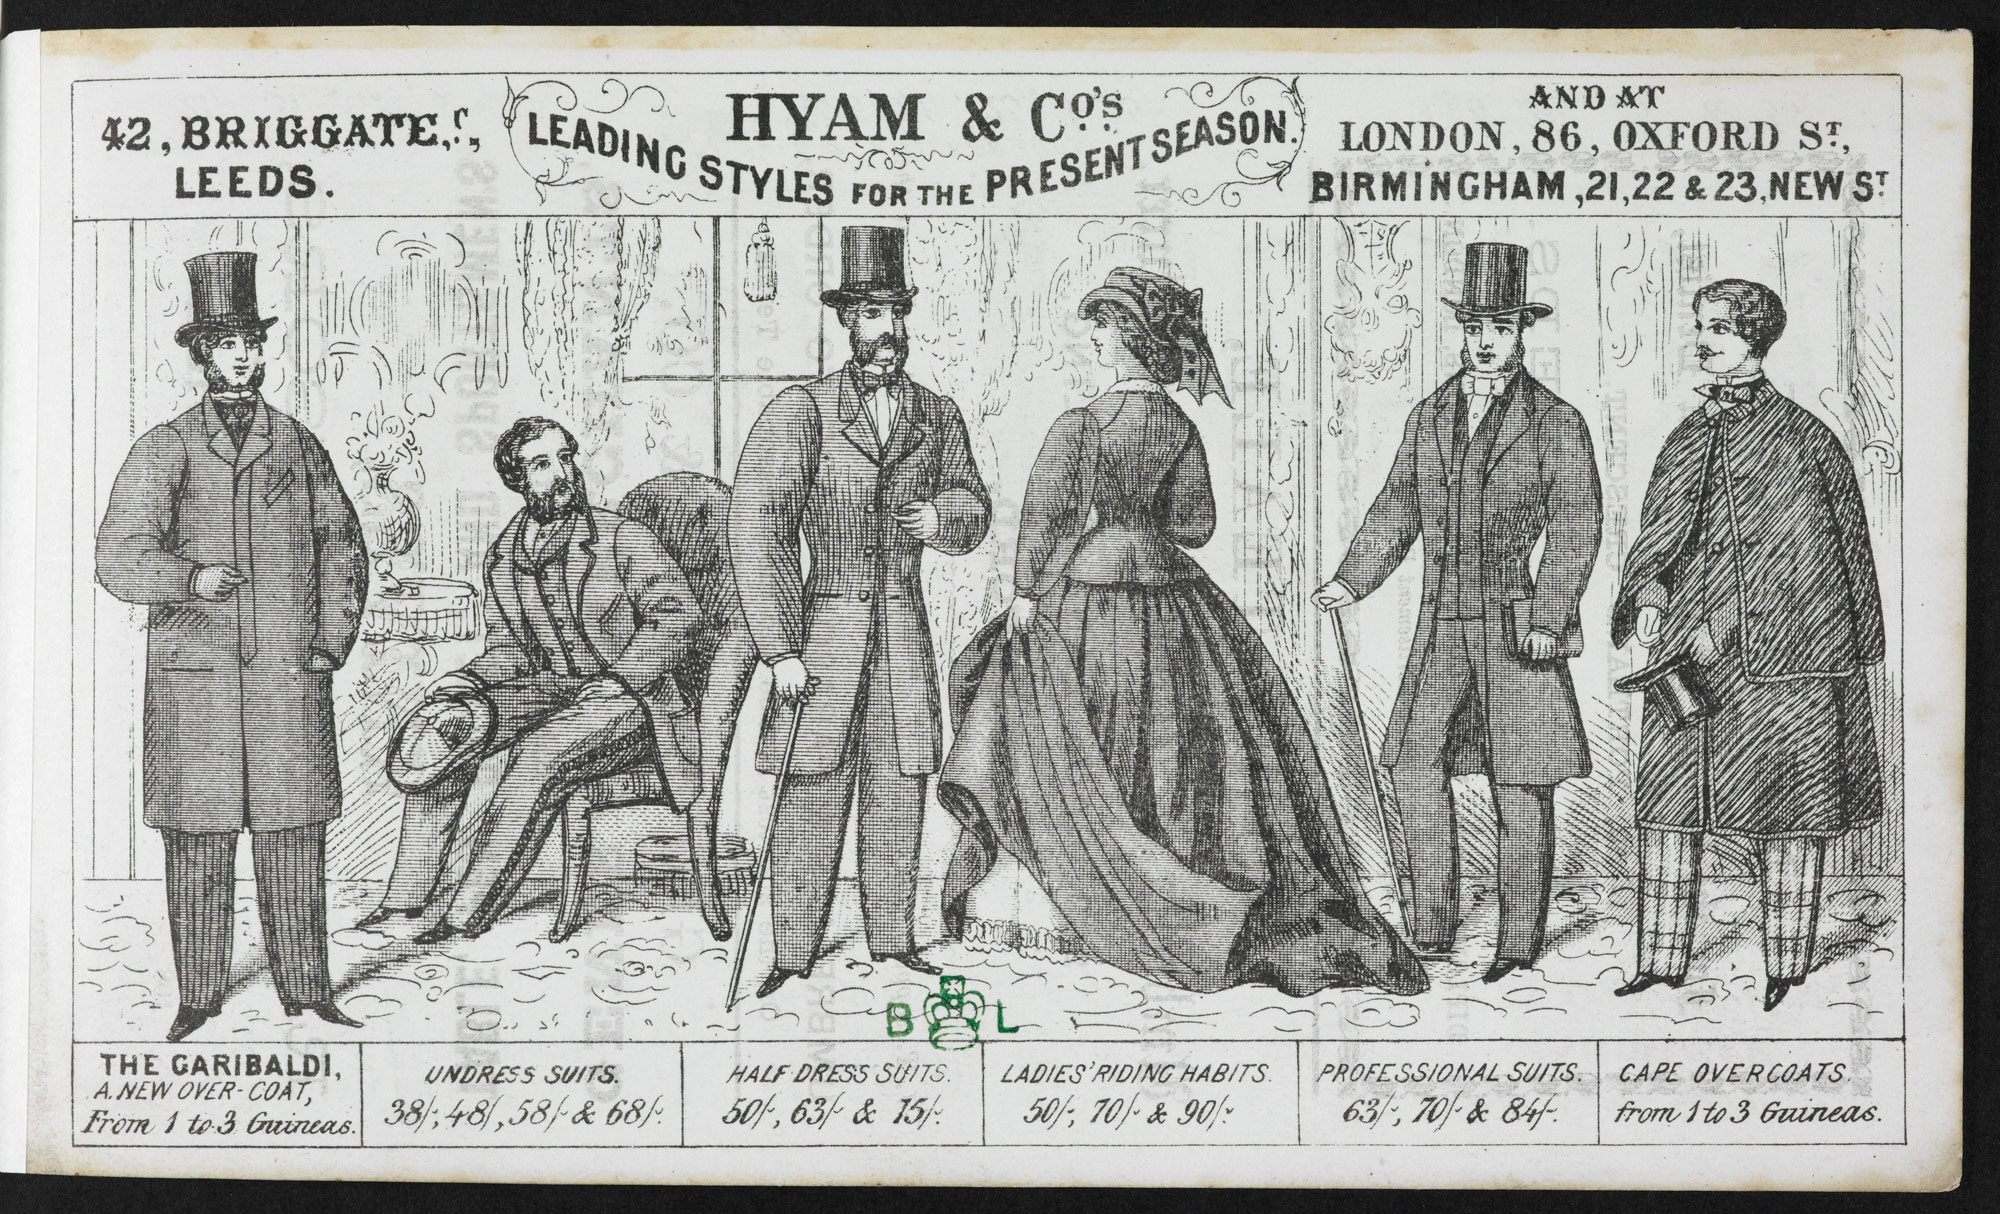 Advertisement for clothing outfitters Hyam & Co. [page: back]